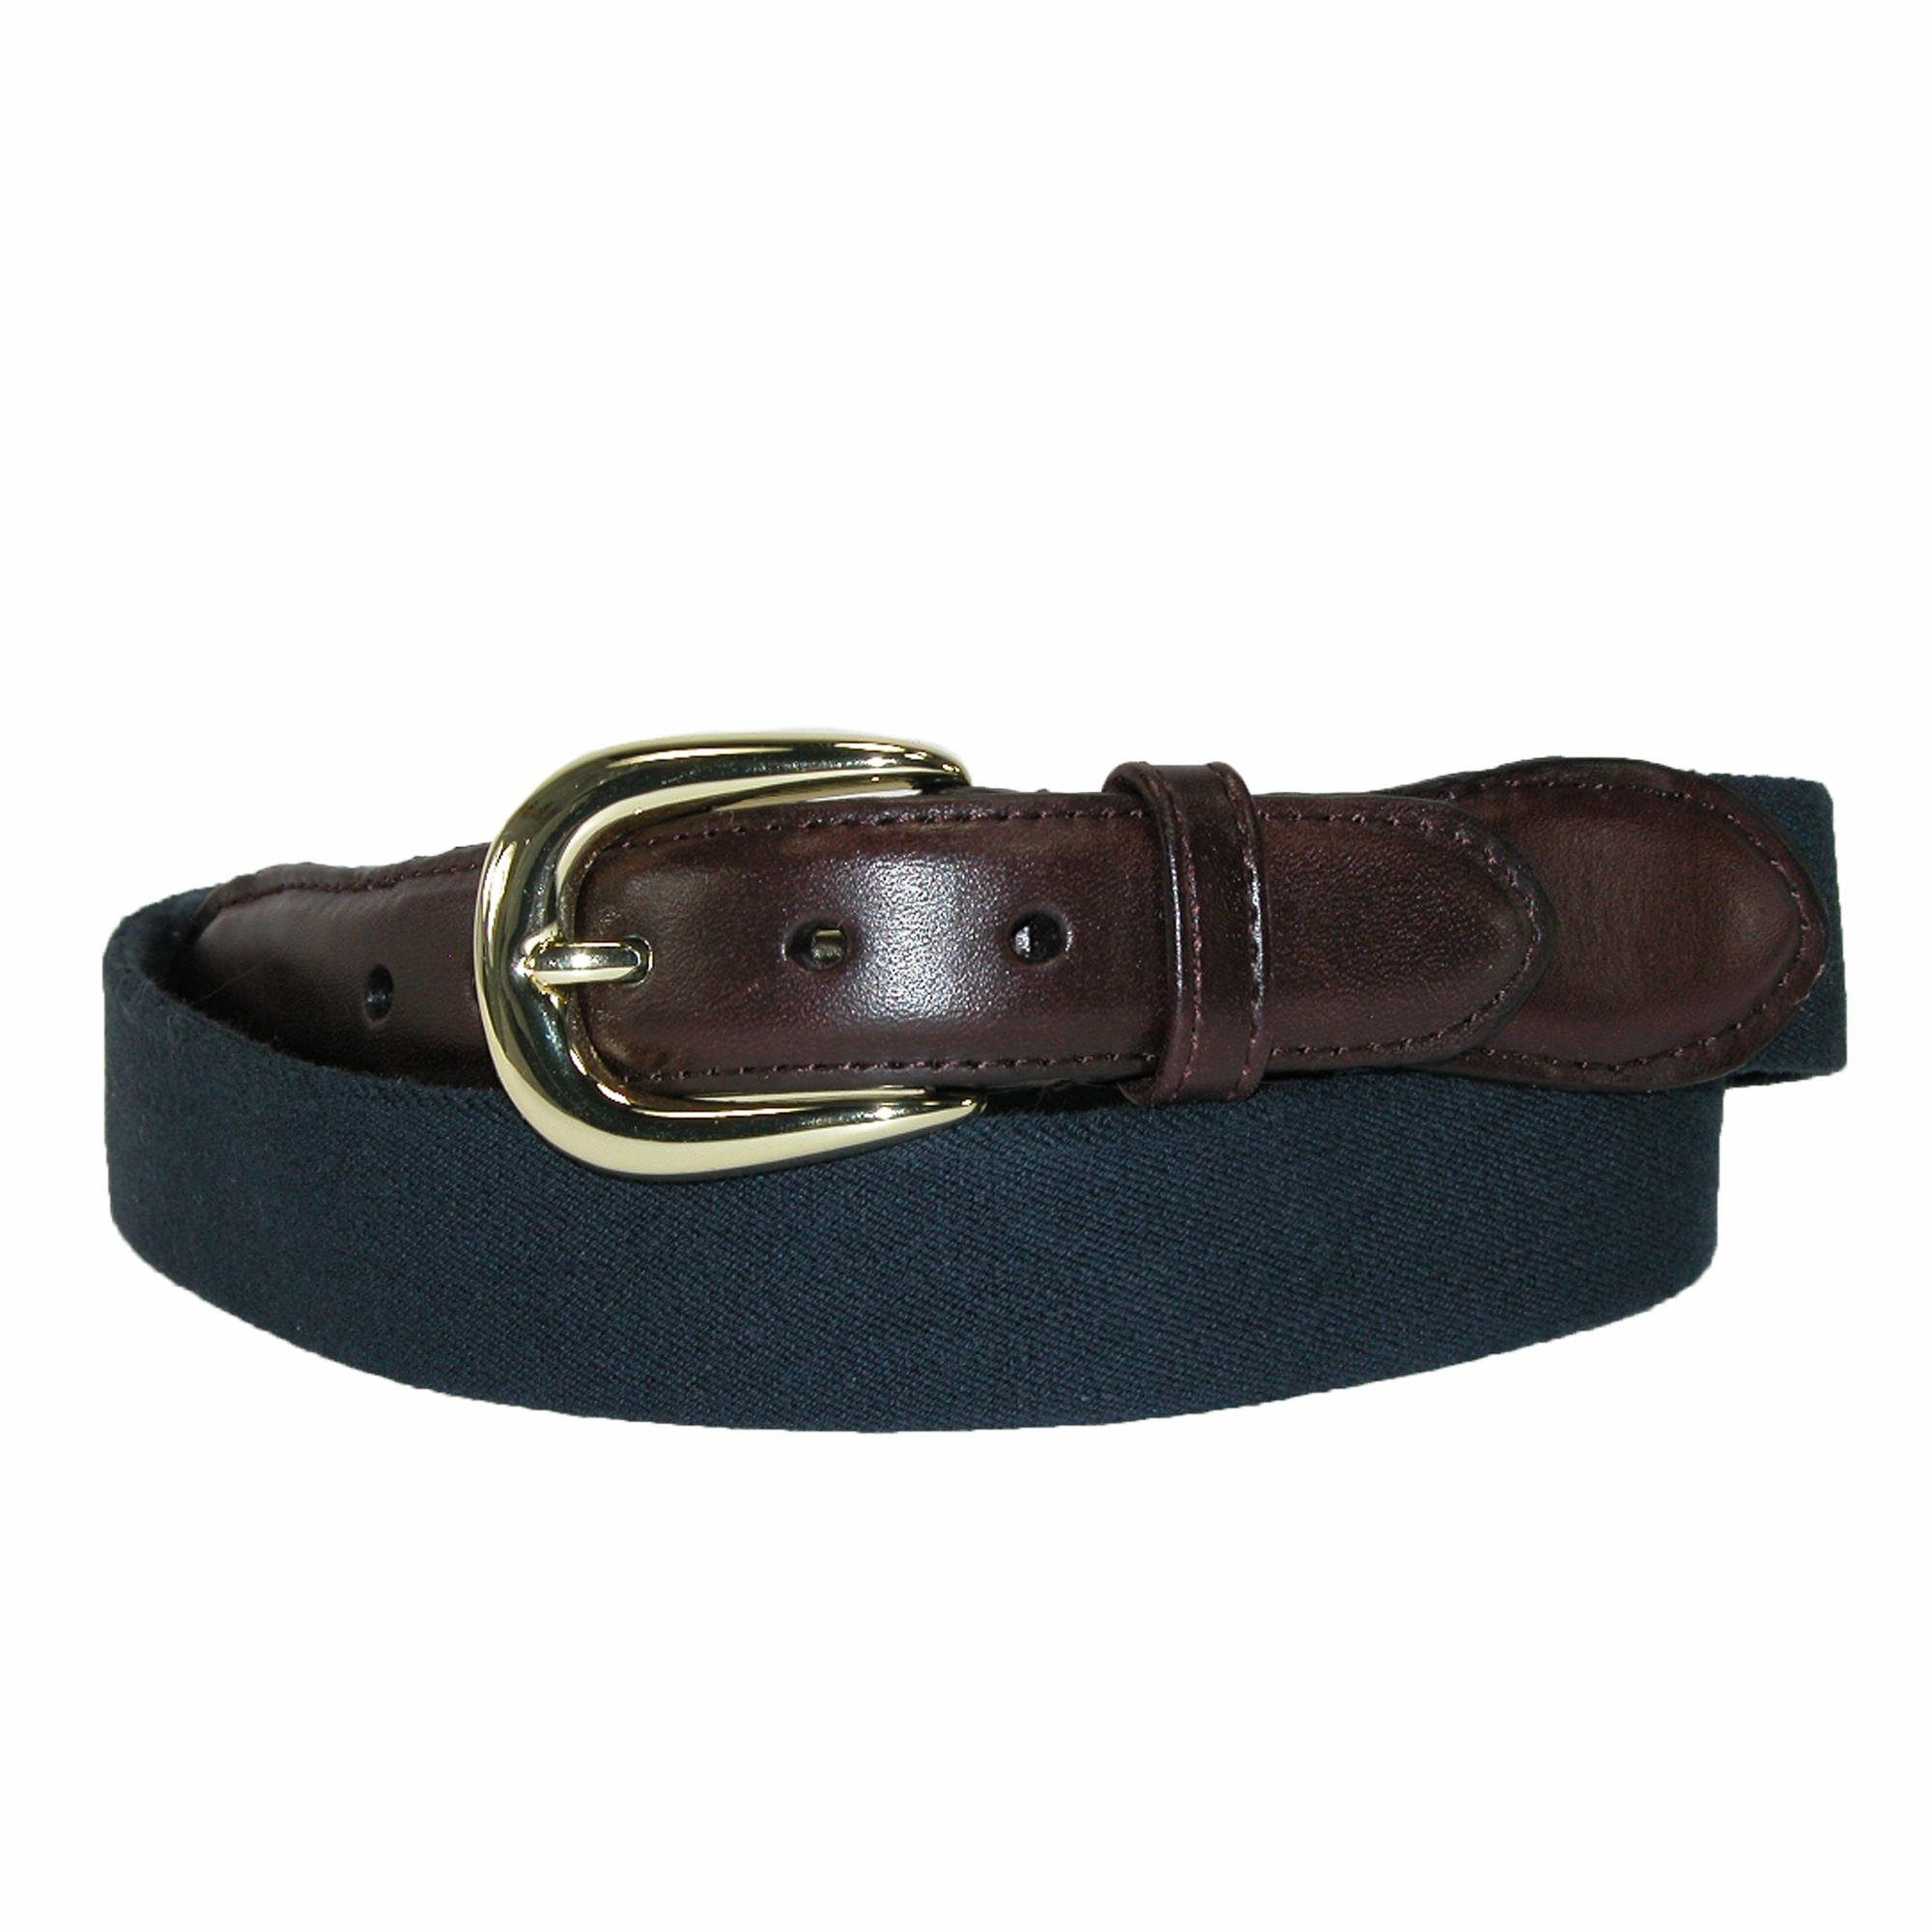 Look no further than russia-youtube.tk to shop Mens Braided Belts with Free Shipping on orders over $45! All things home, all for less.